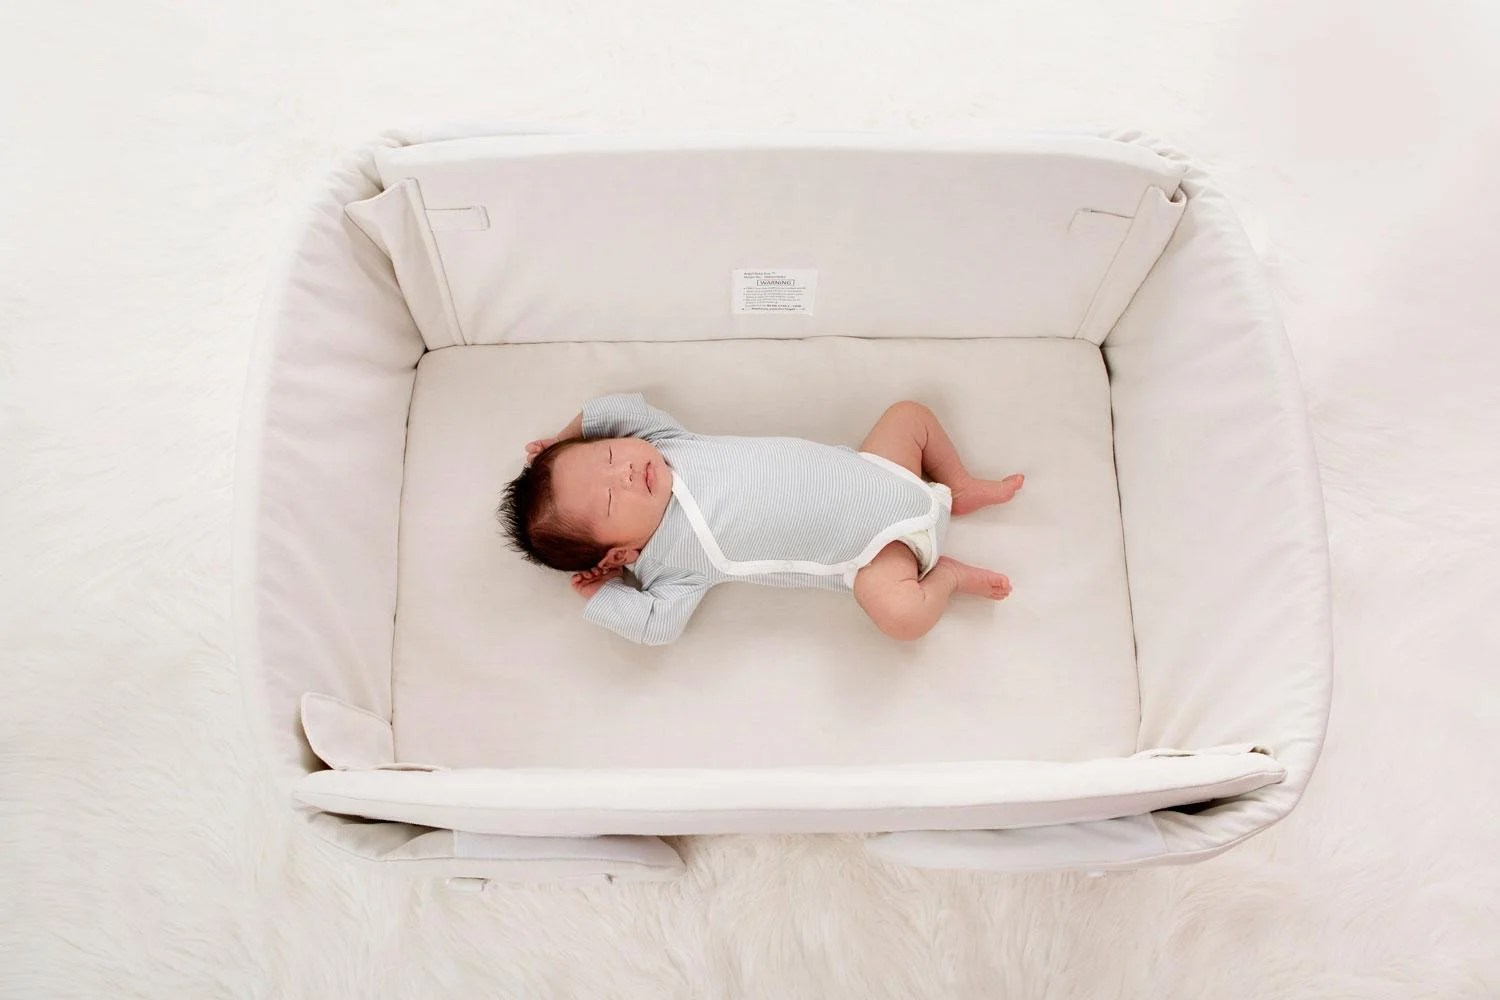 Baby Cot United Airlines Best Travel Cots For Babies And Toddlers 2019 London